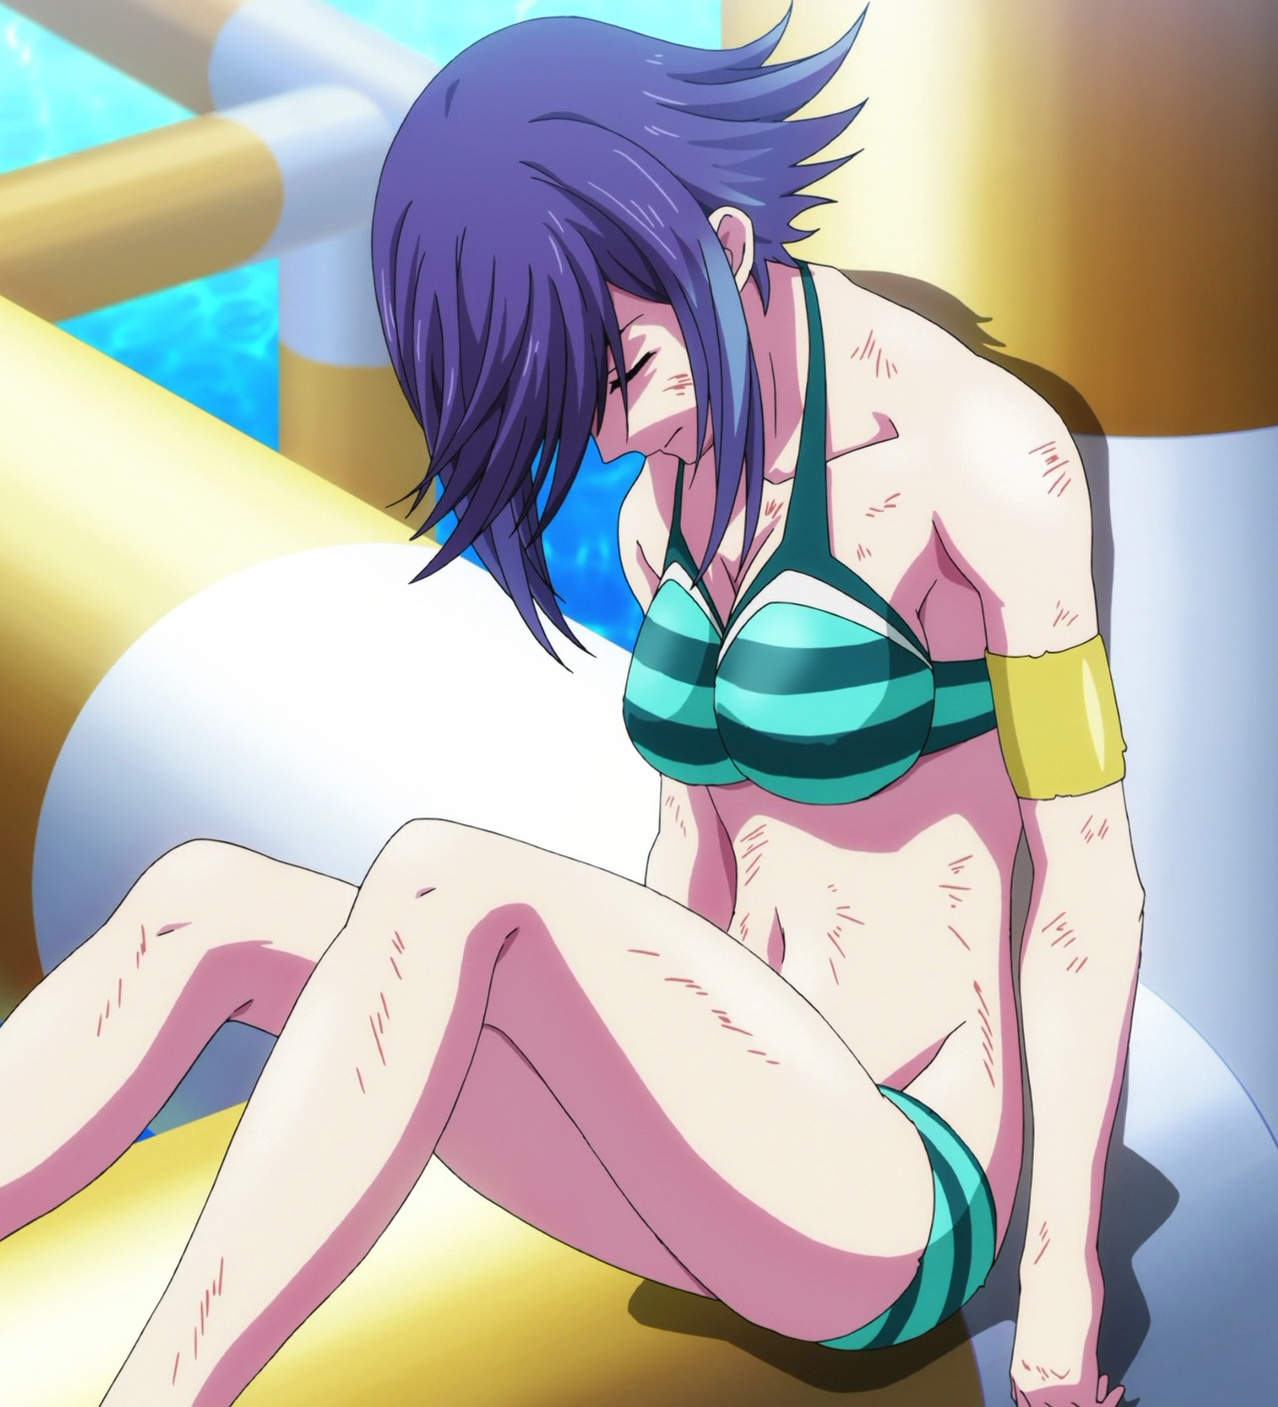 leopard-raws-keijo-09-raw-bs11-1280x720-x264-aac-mp4_001104-392_stitch